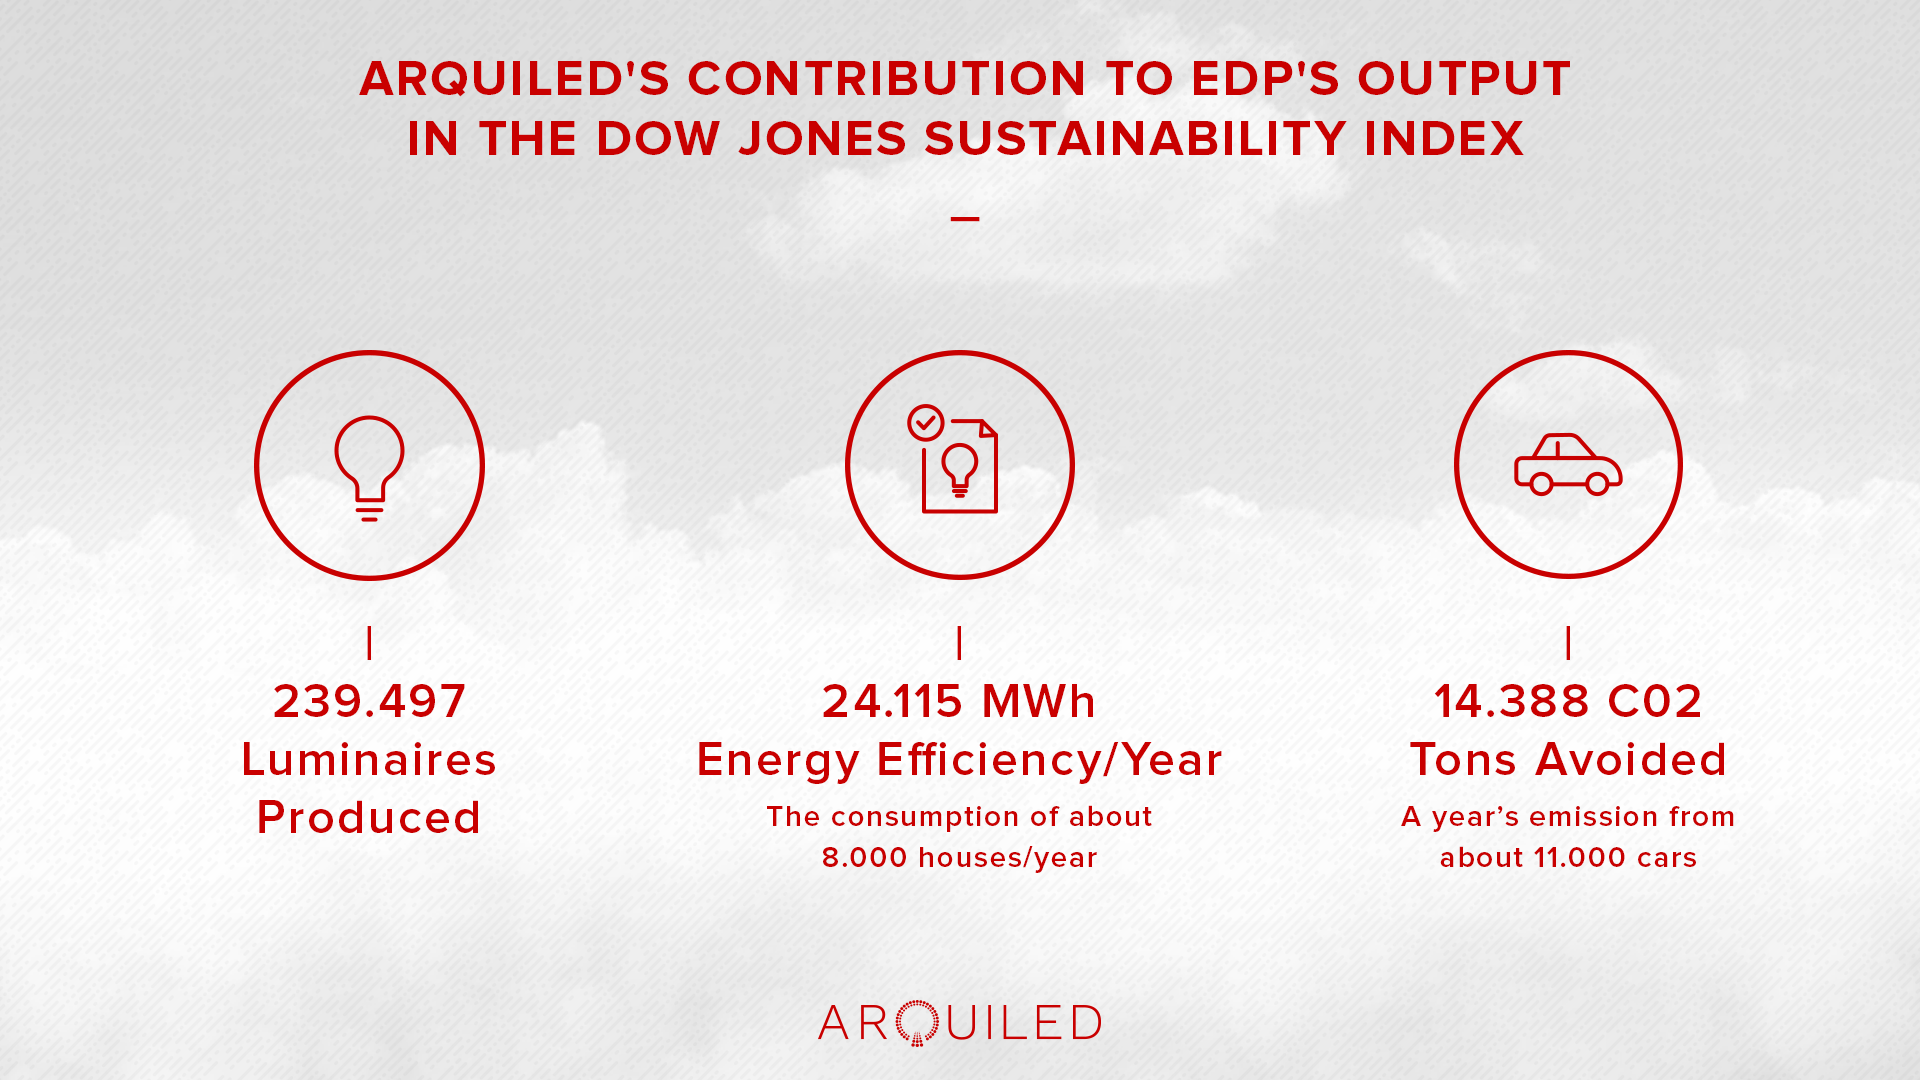 Arquiled' contribution do EDP output in Dow Jones Sustainability Index